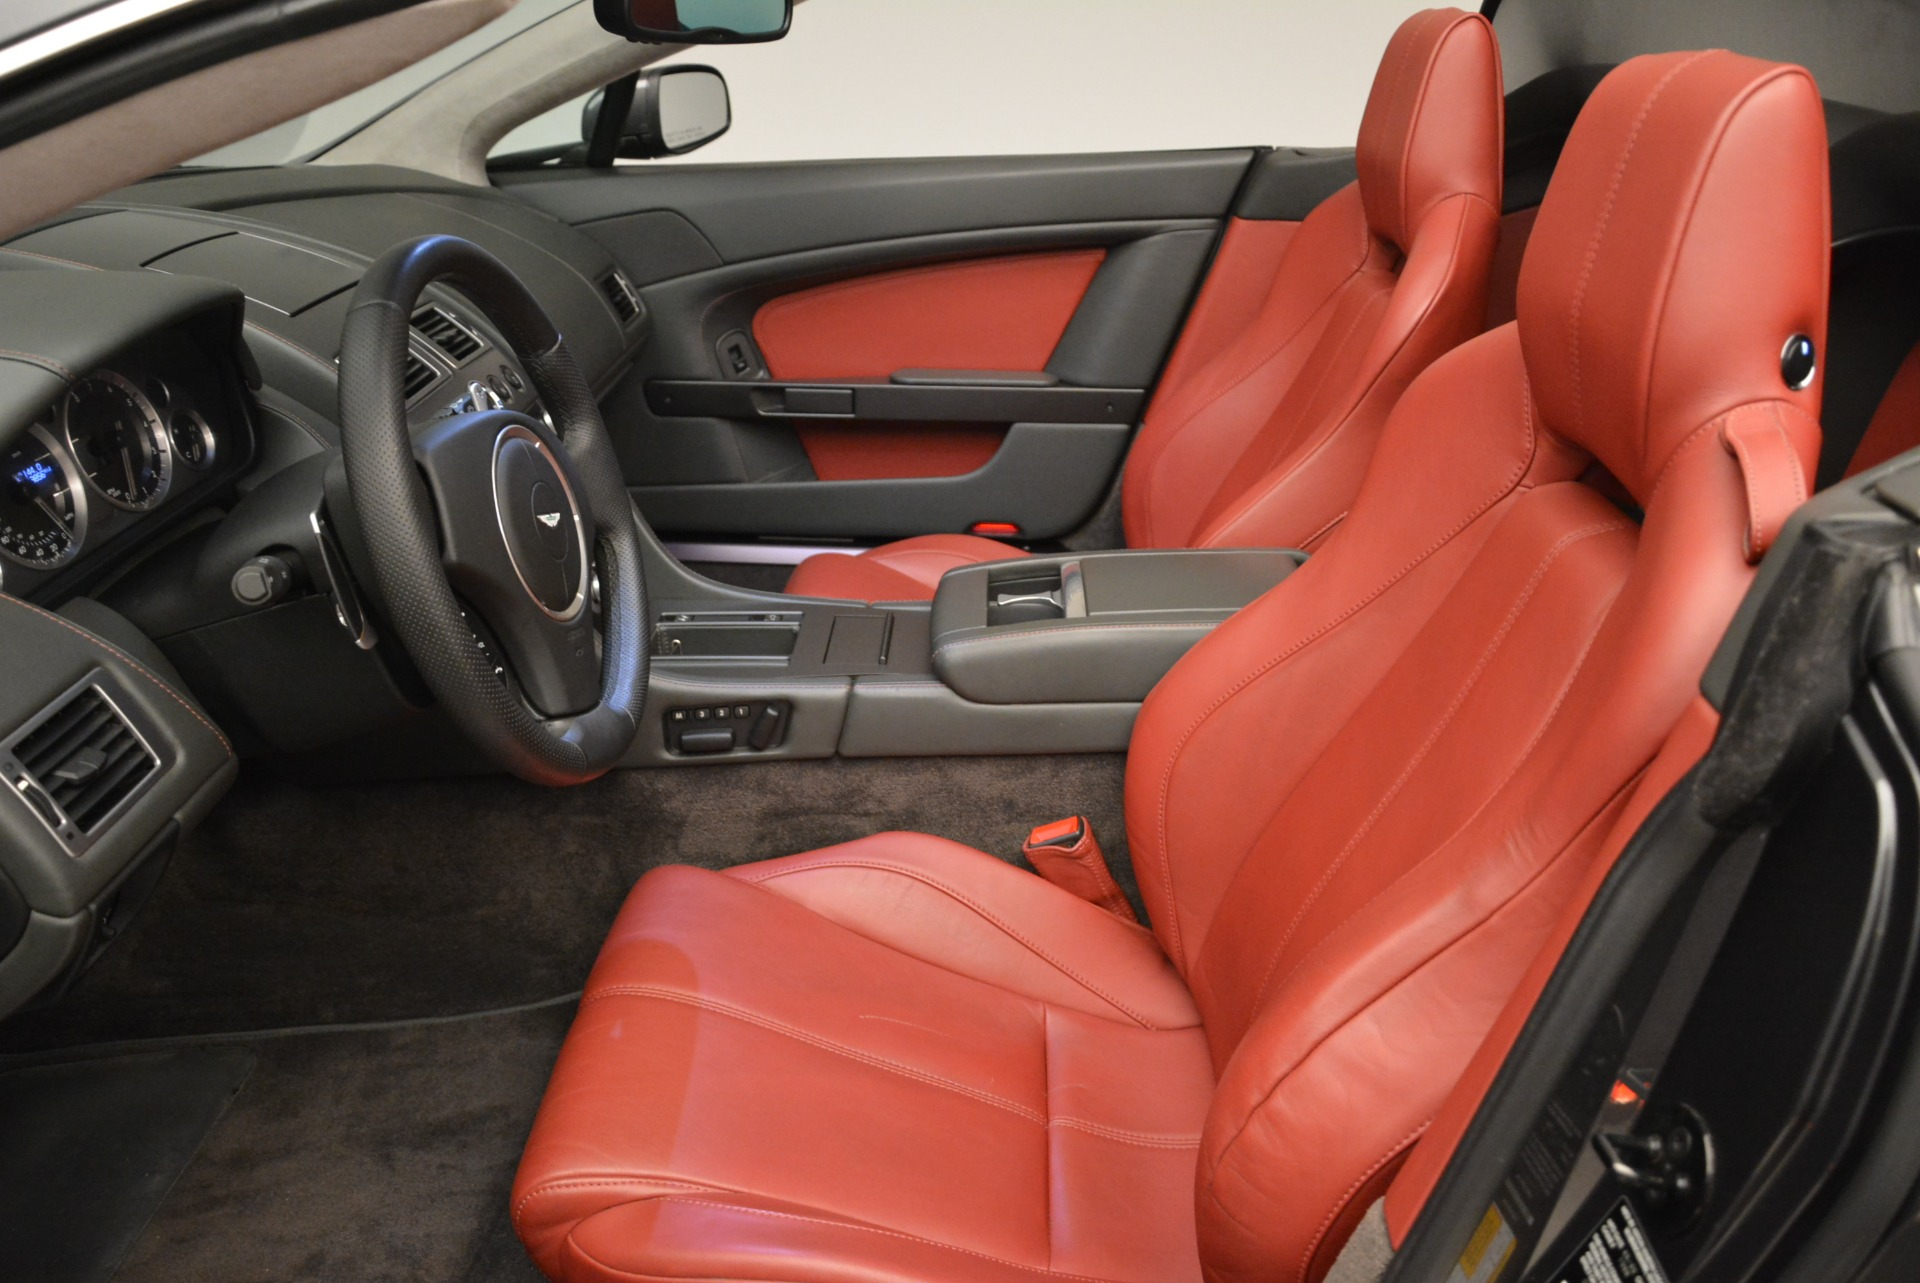 Used 2009 Aston Martin V8 Vantage Roadster For Sale In Greenwich, CT 2123_p25